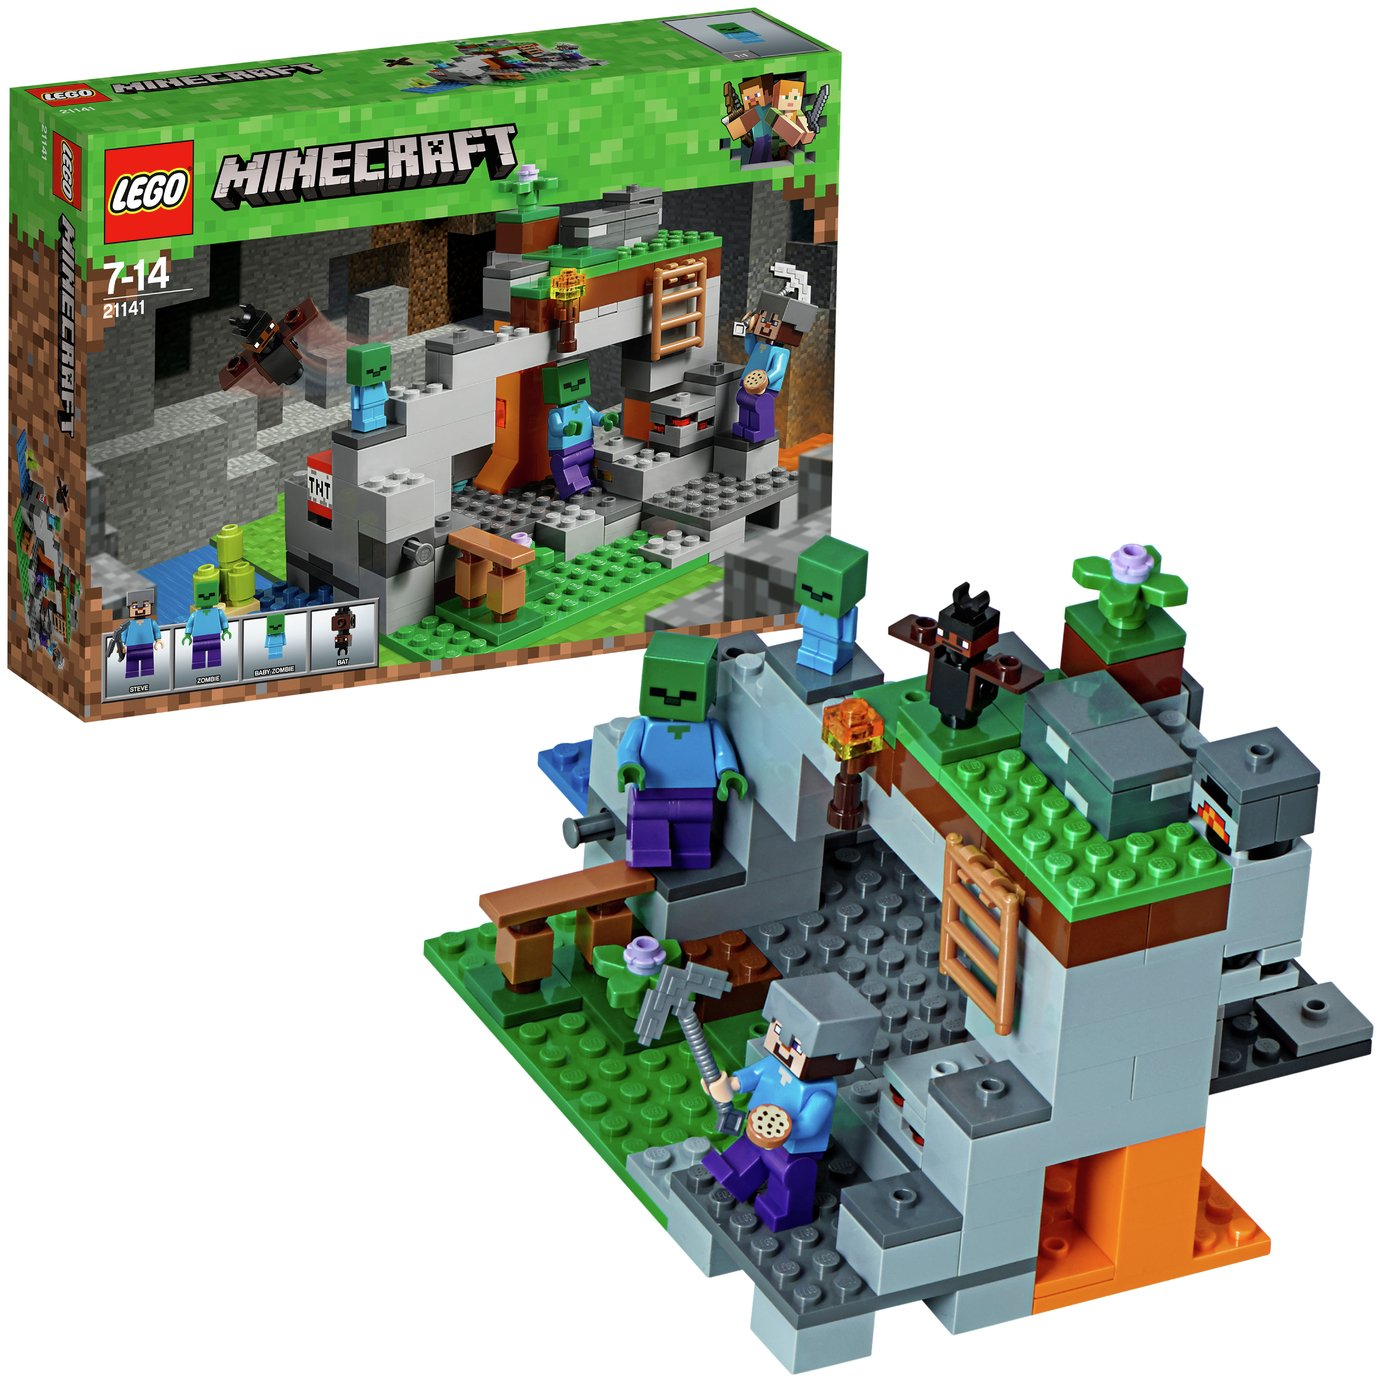 LEGO Minecraft The Zombie Cave Adventures Playset - 21141